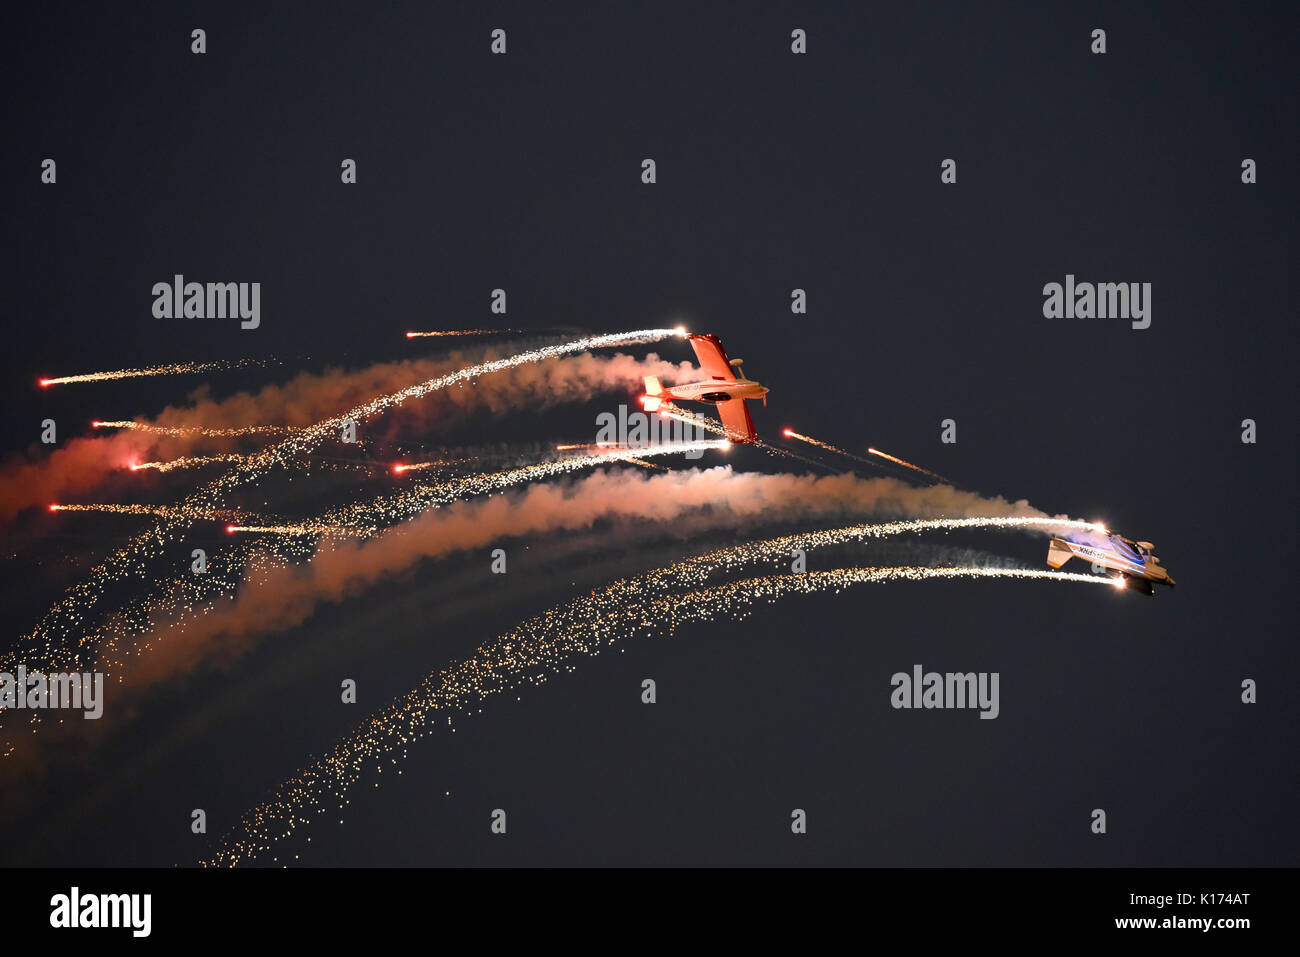 Fireflies aerobatic display team flying their pyrotechnics show at the Clacton airshow at dusk. Space for copy - Stock Image